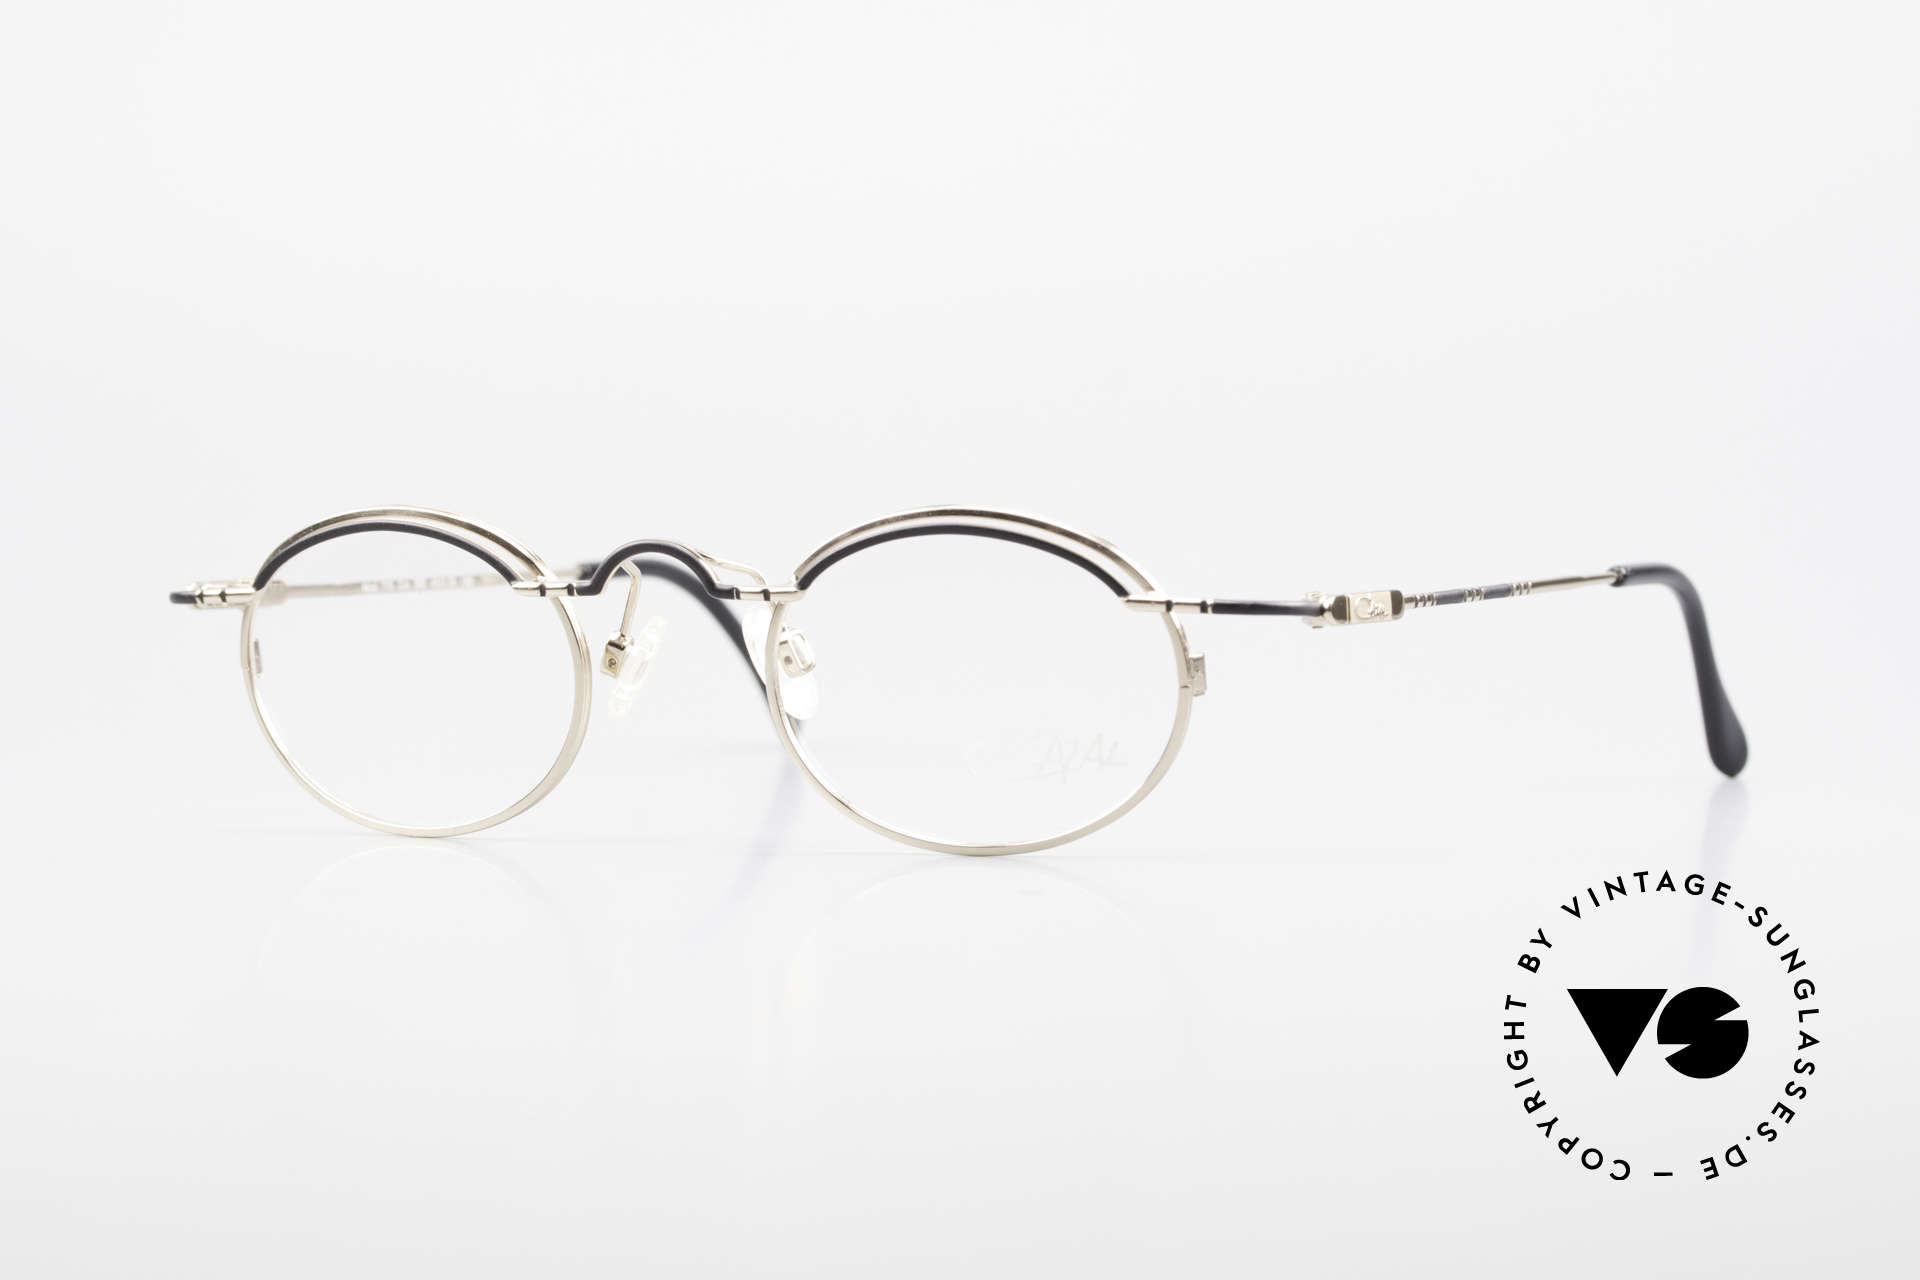 Cazal 775 Rare Oval 1990's Eyeglasses, oval vintage eyeglass-frame by Cazal from 1997/98, Made for Men and Women